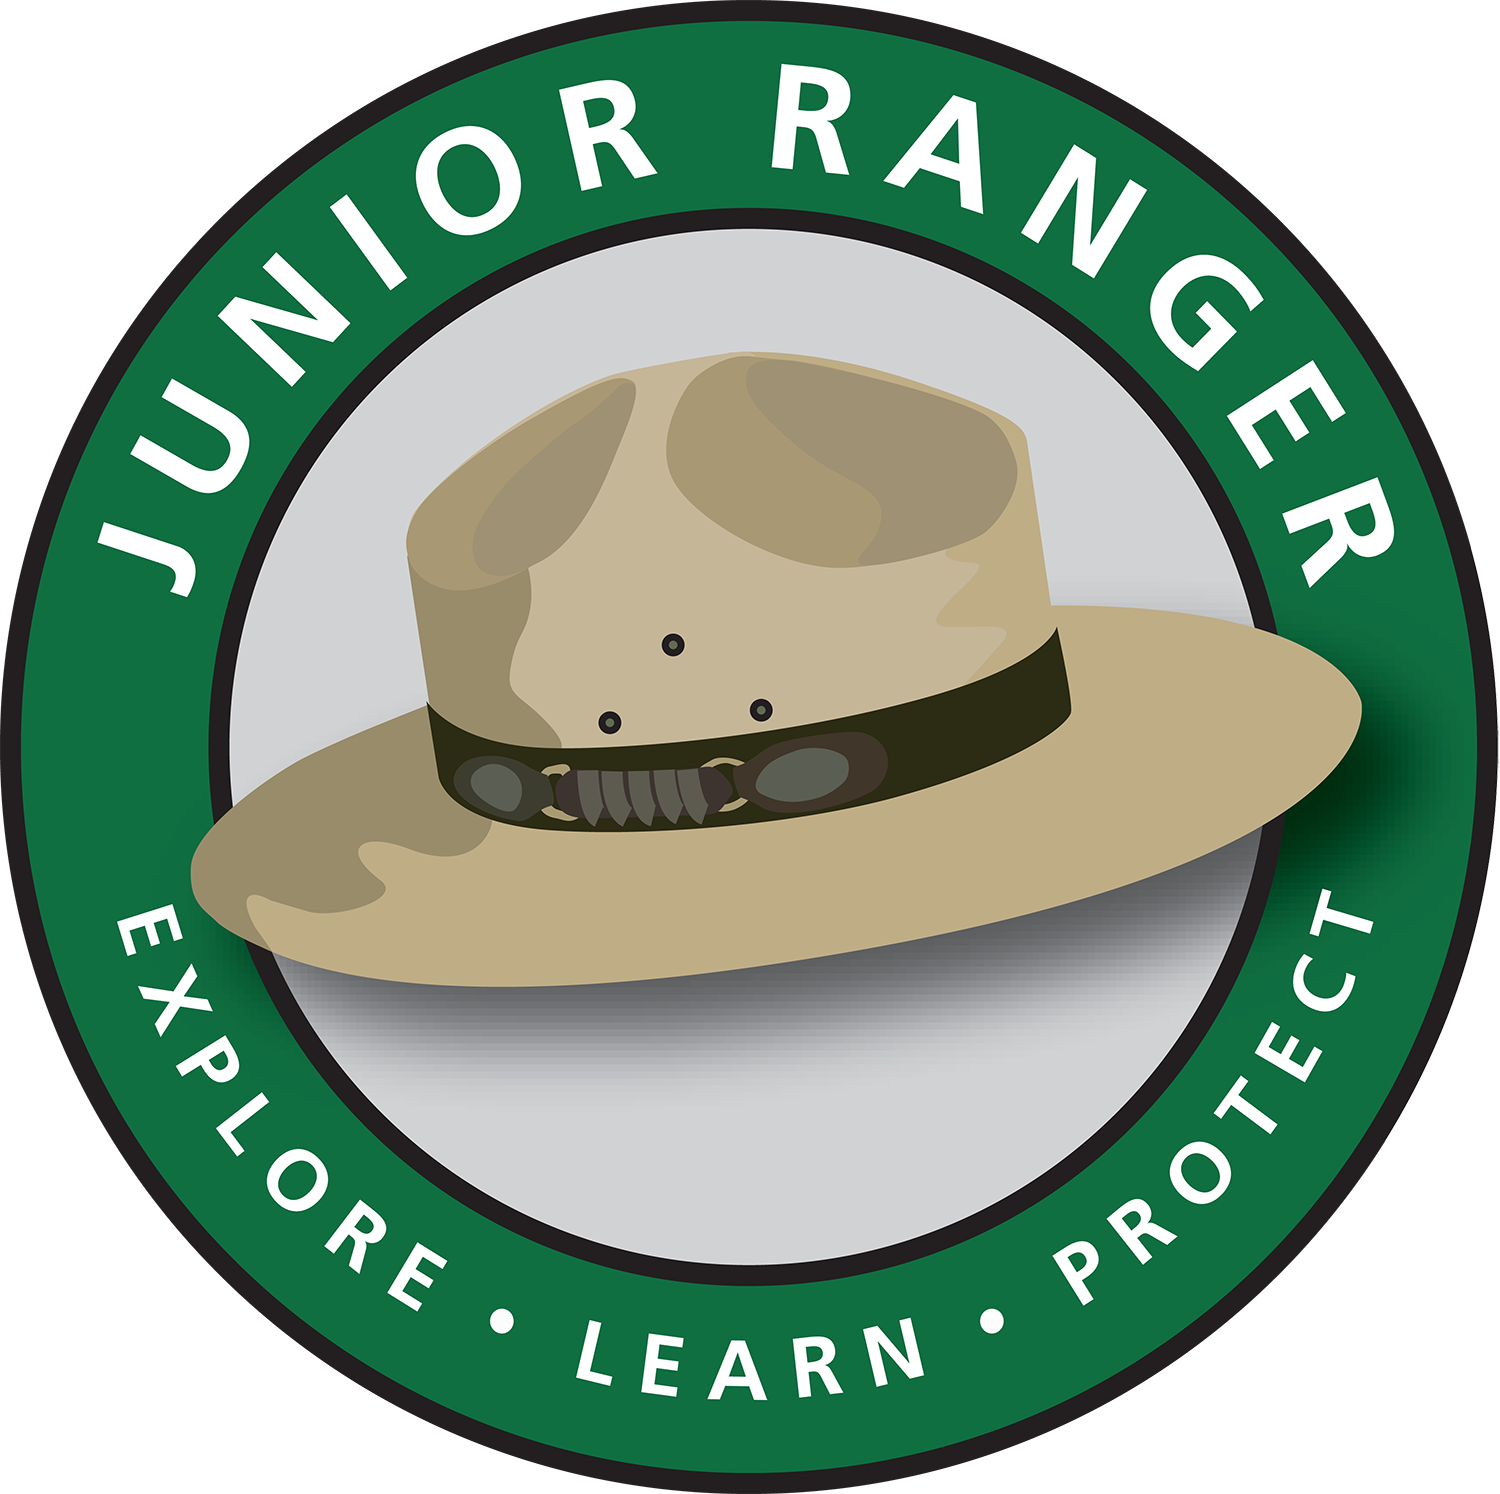 Logo in color with motto; learn, explore, protect